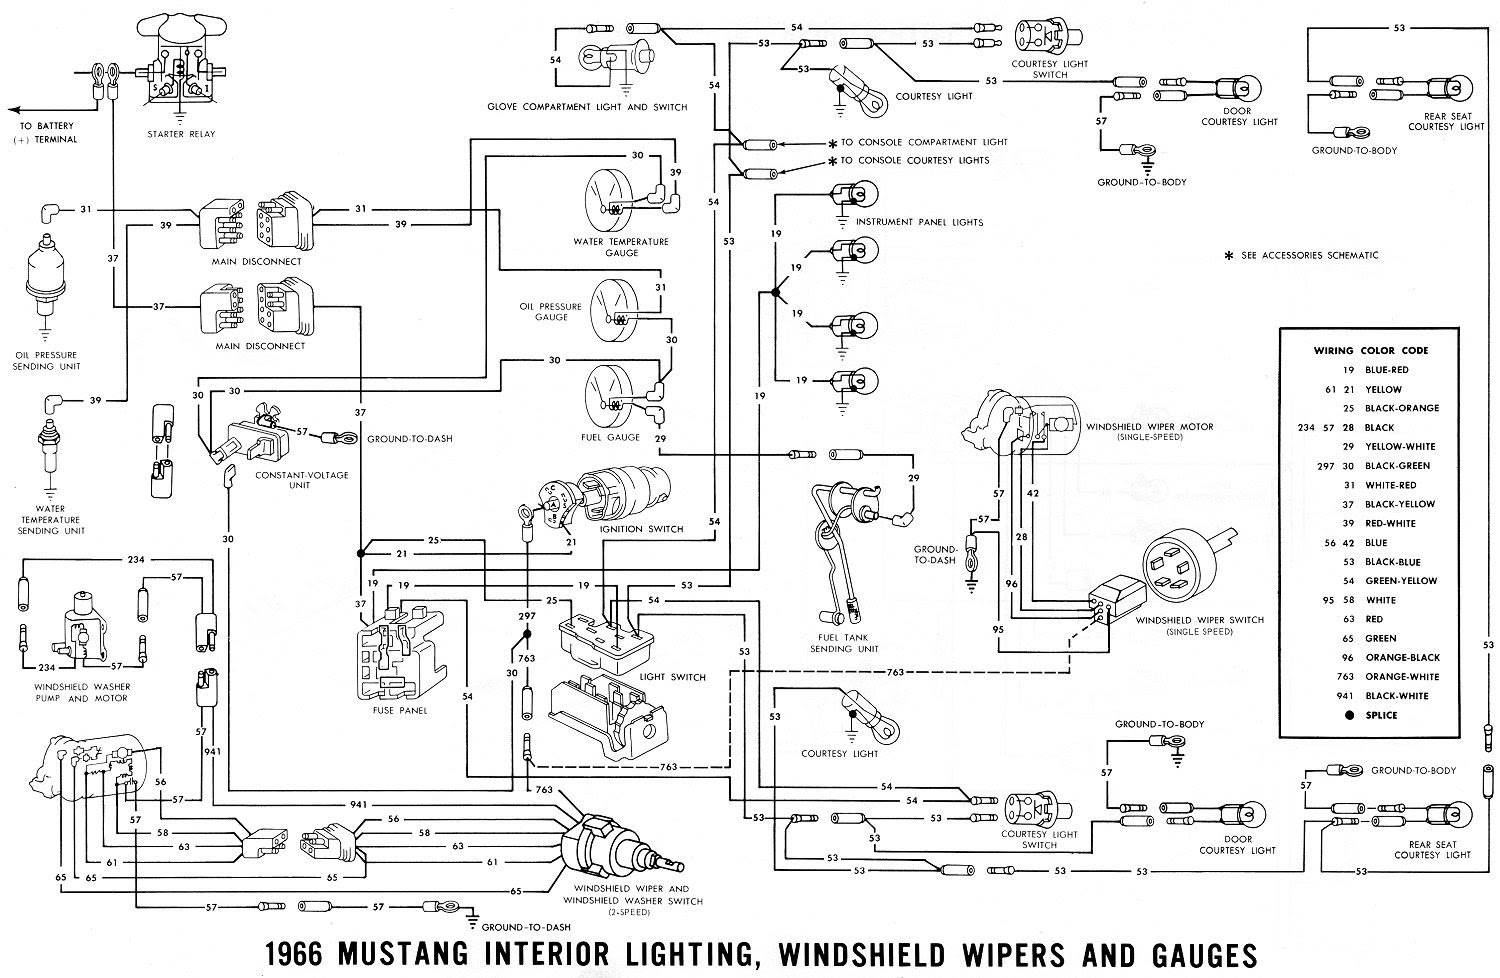 1969 Ford Mustang Engine Wiring Diagram Sconce Lamp Wiring Diagram For Wiring Diagram Schematics